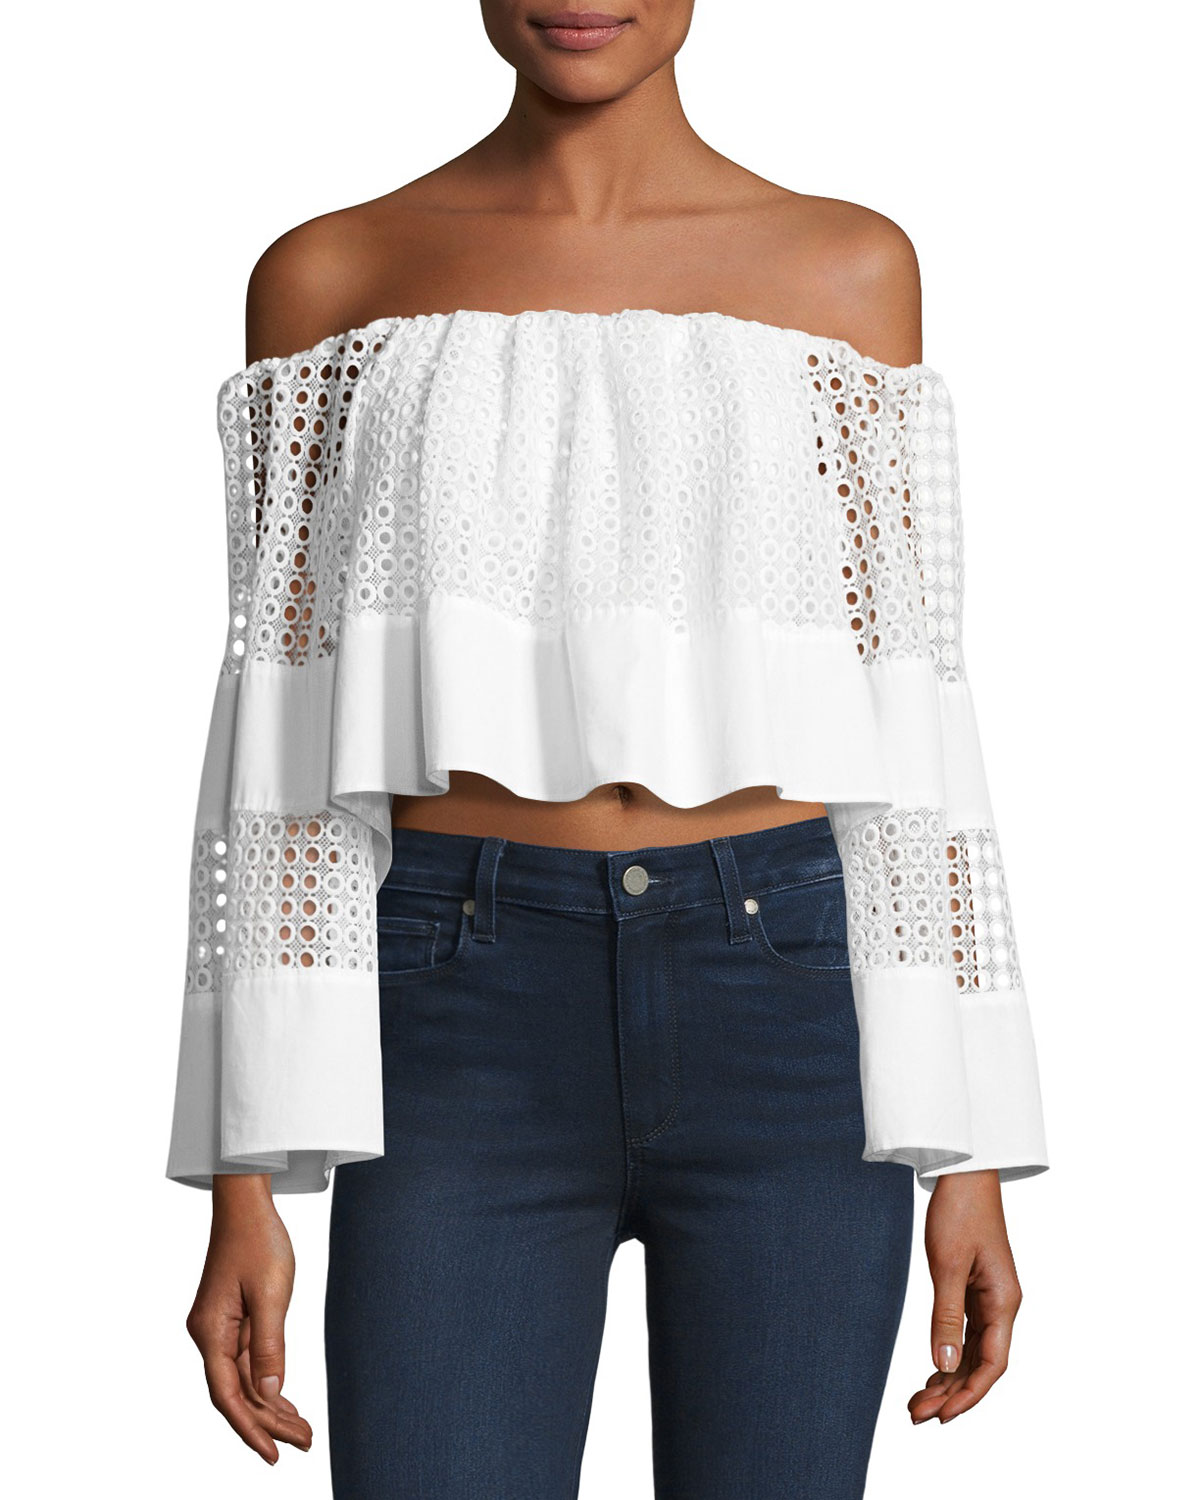 b4ad4b9c64459 Kendall + Kylie Off-the-Shoulder Circle Lace Crop Top